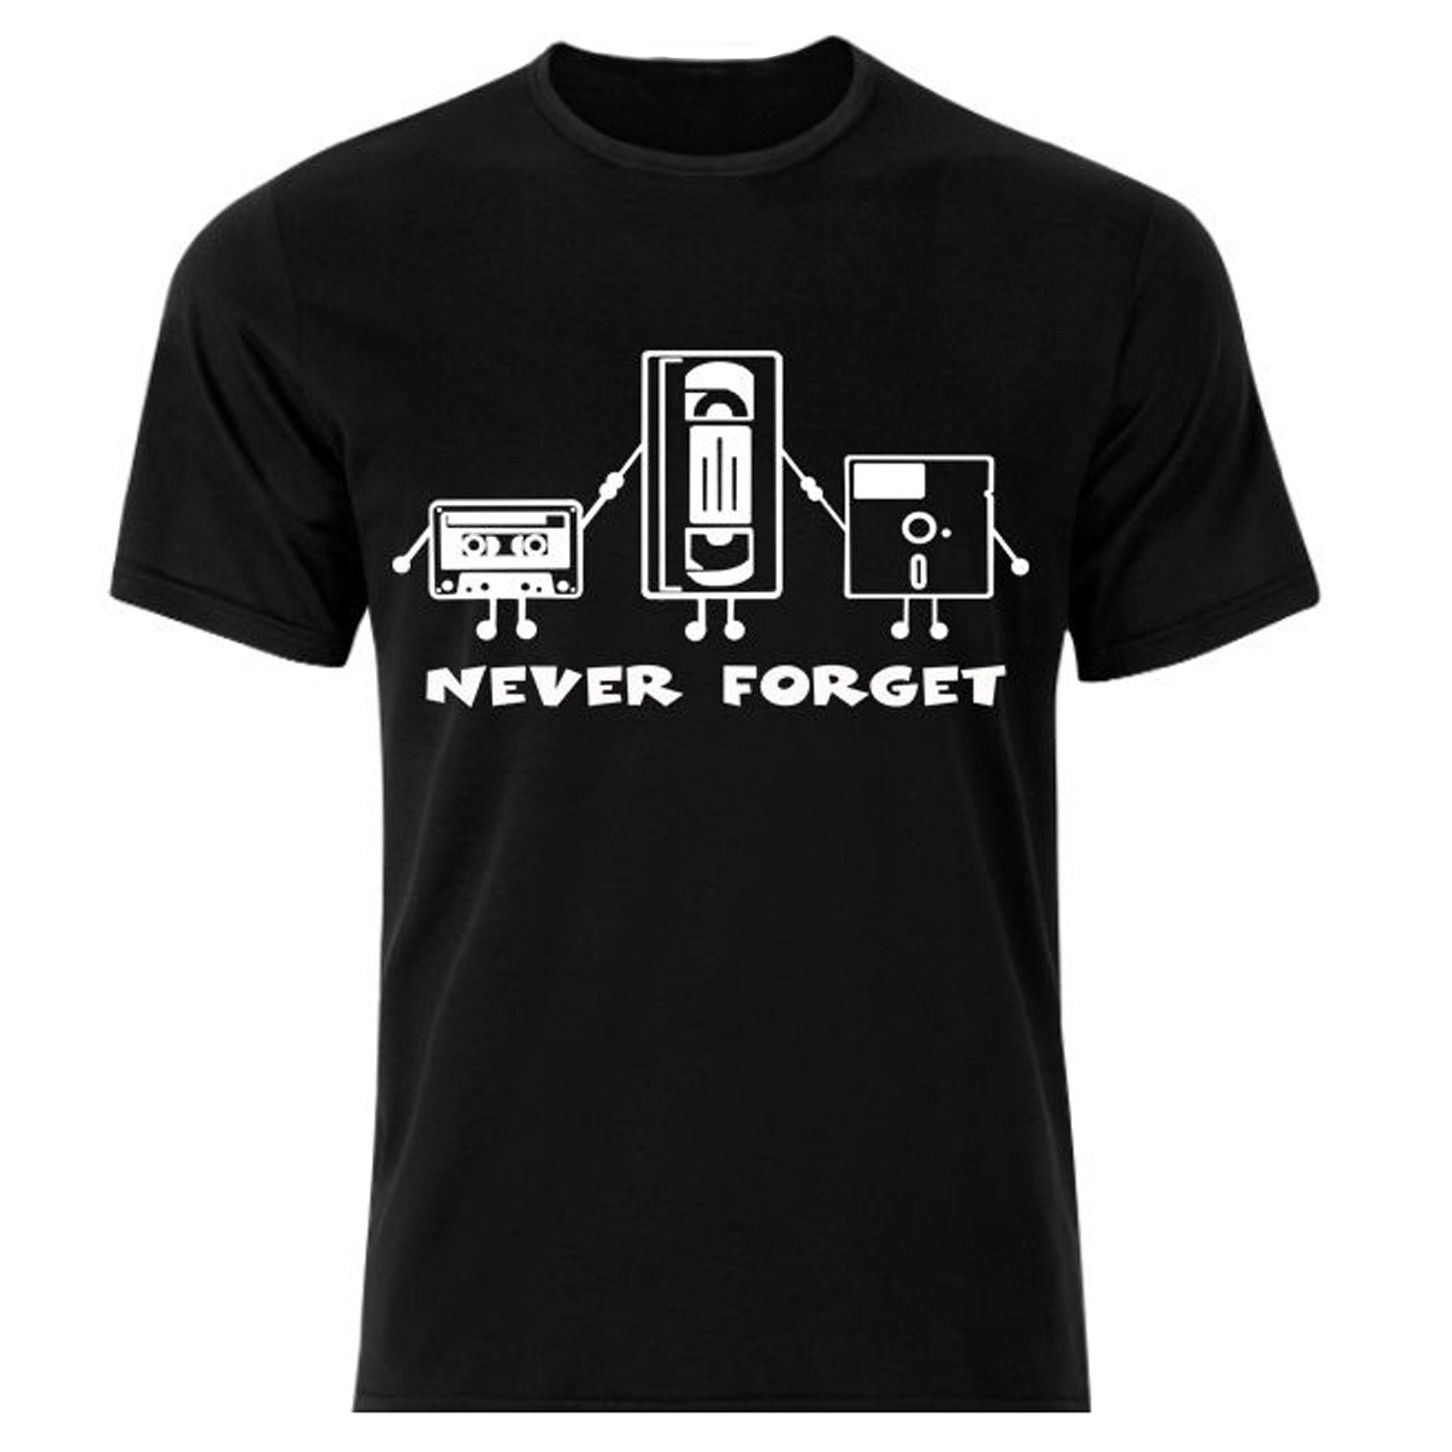 Never Forget VHS Tape Floppy Disk Funny T-Shirt Humor Joke Mens T-Shirt S - 3XL